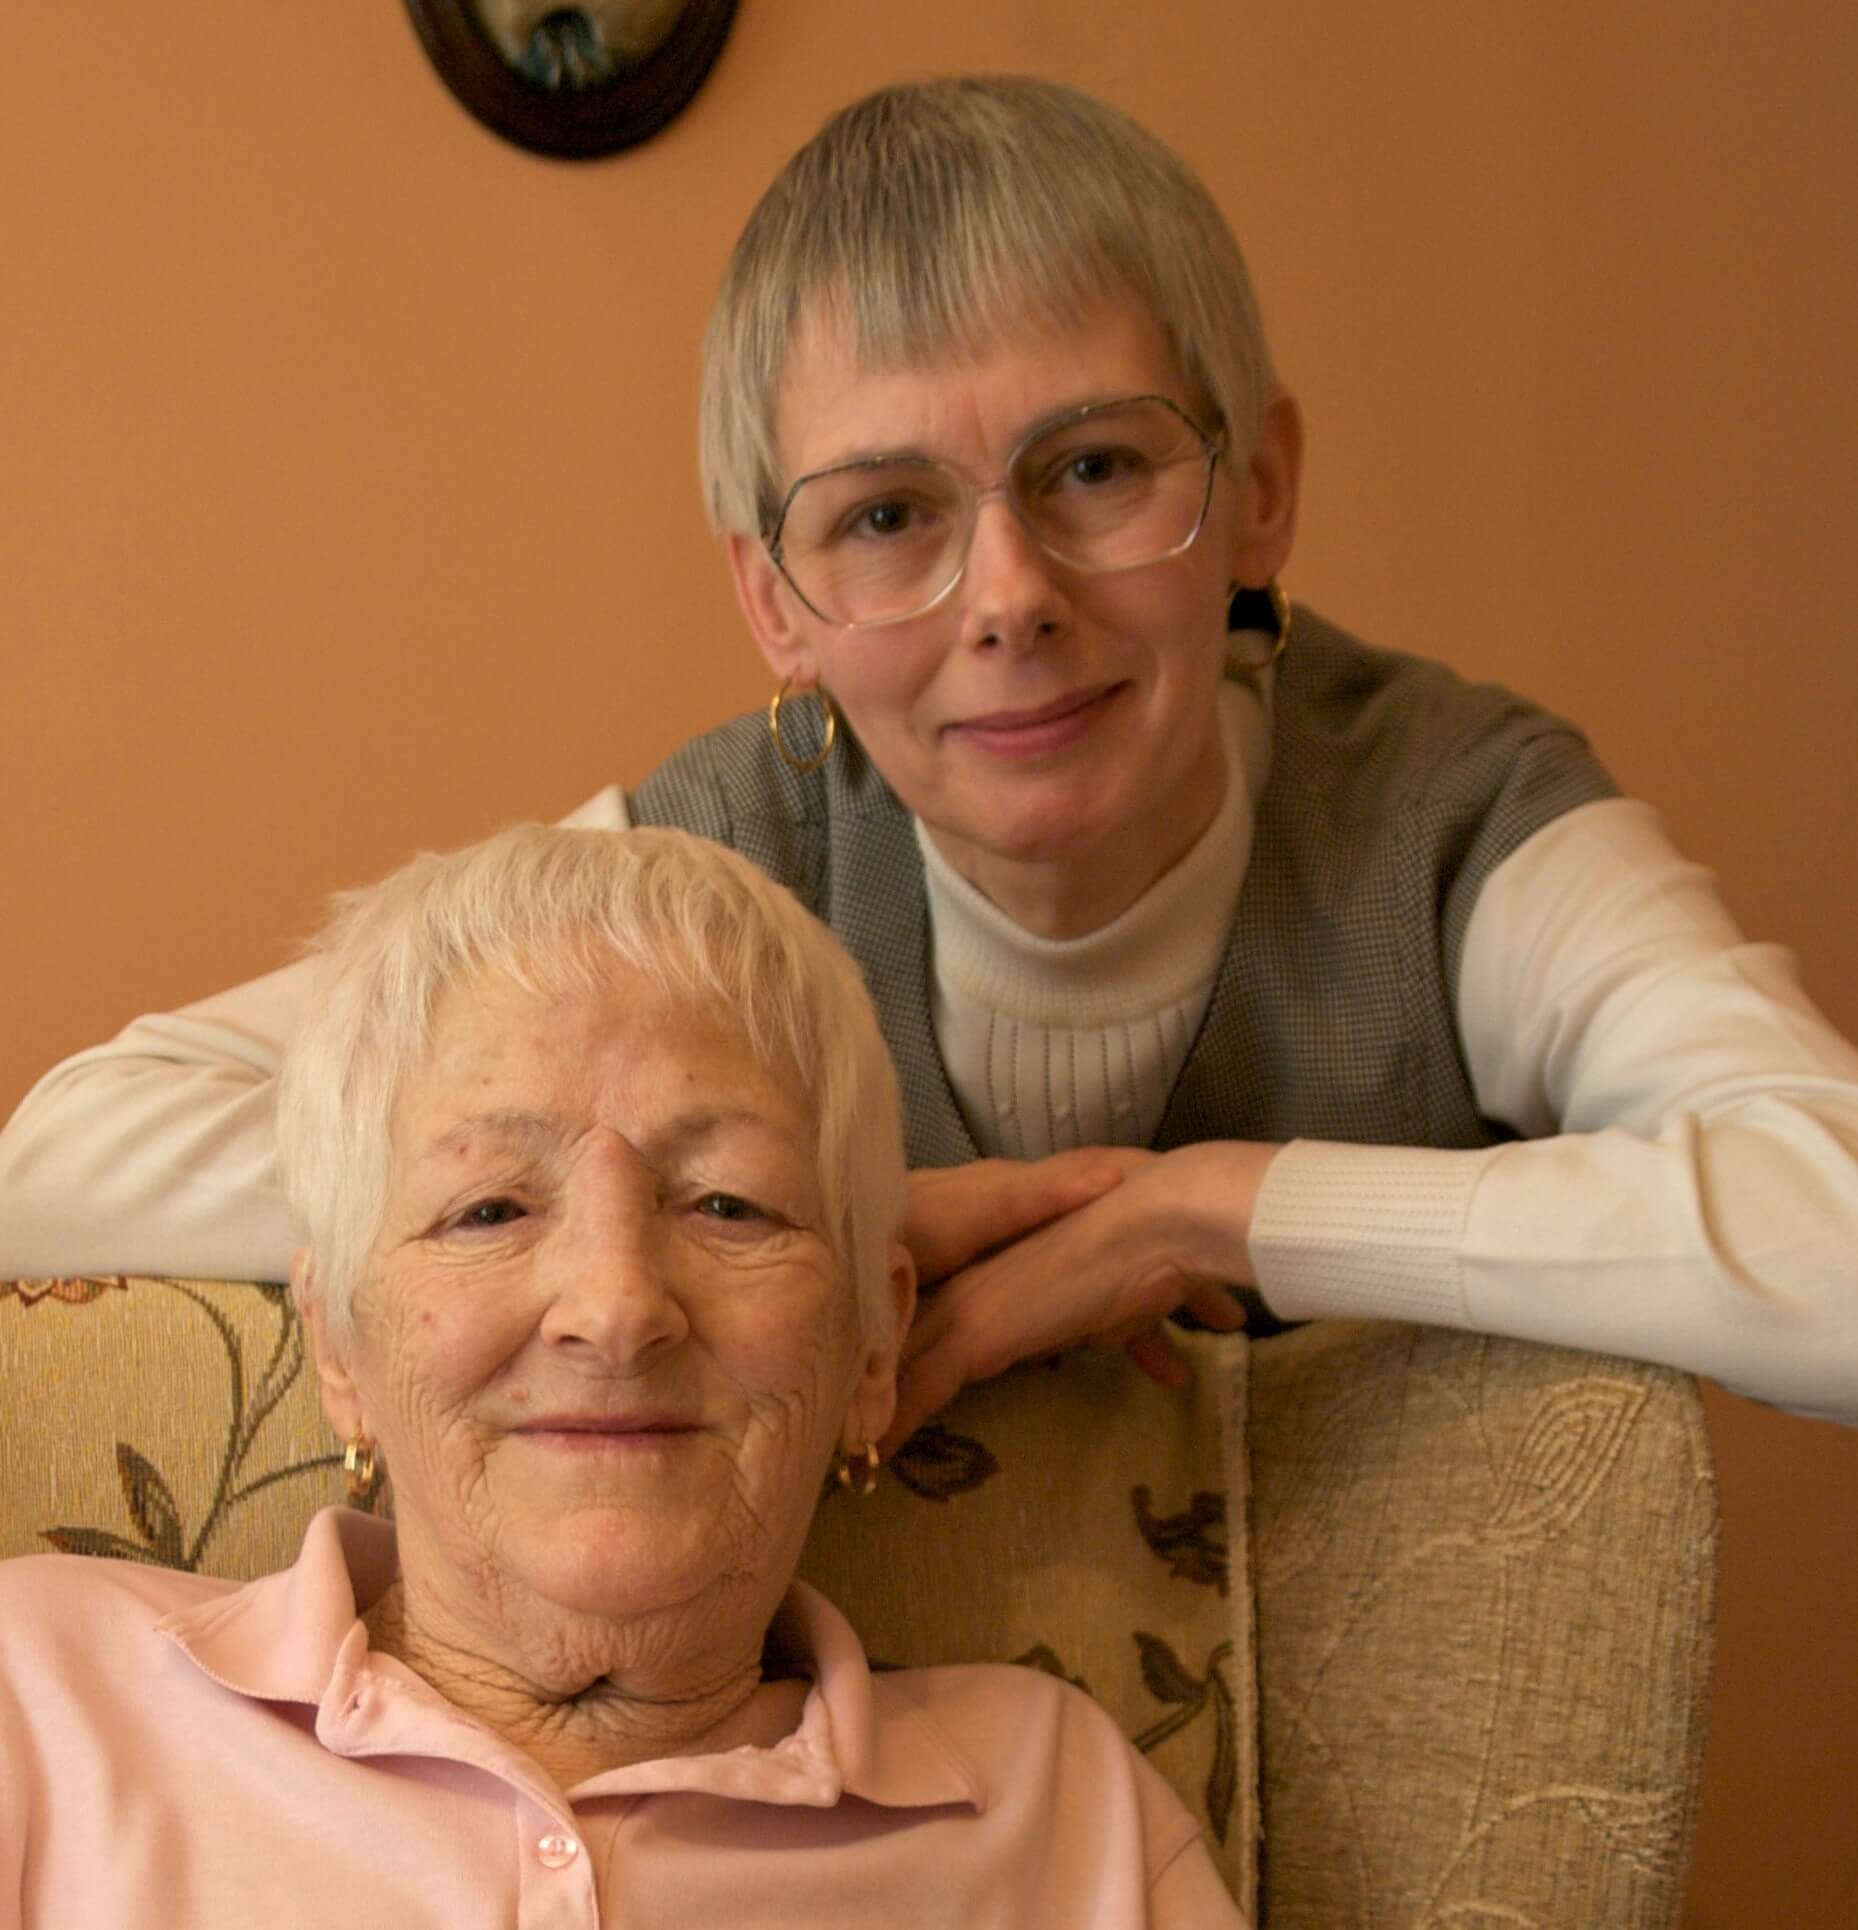 Susan's story – More time to care for loved ones